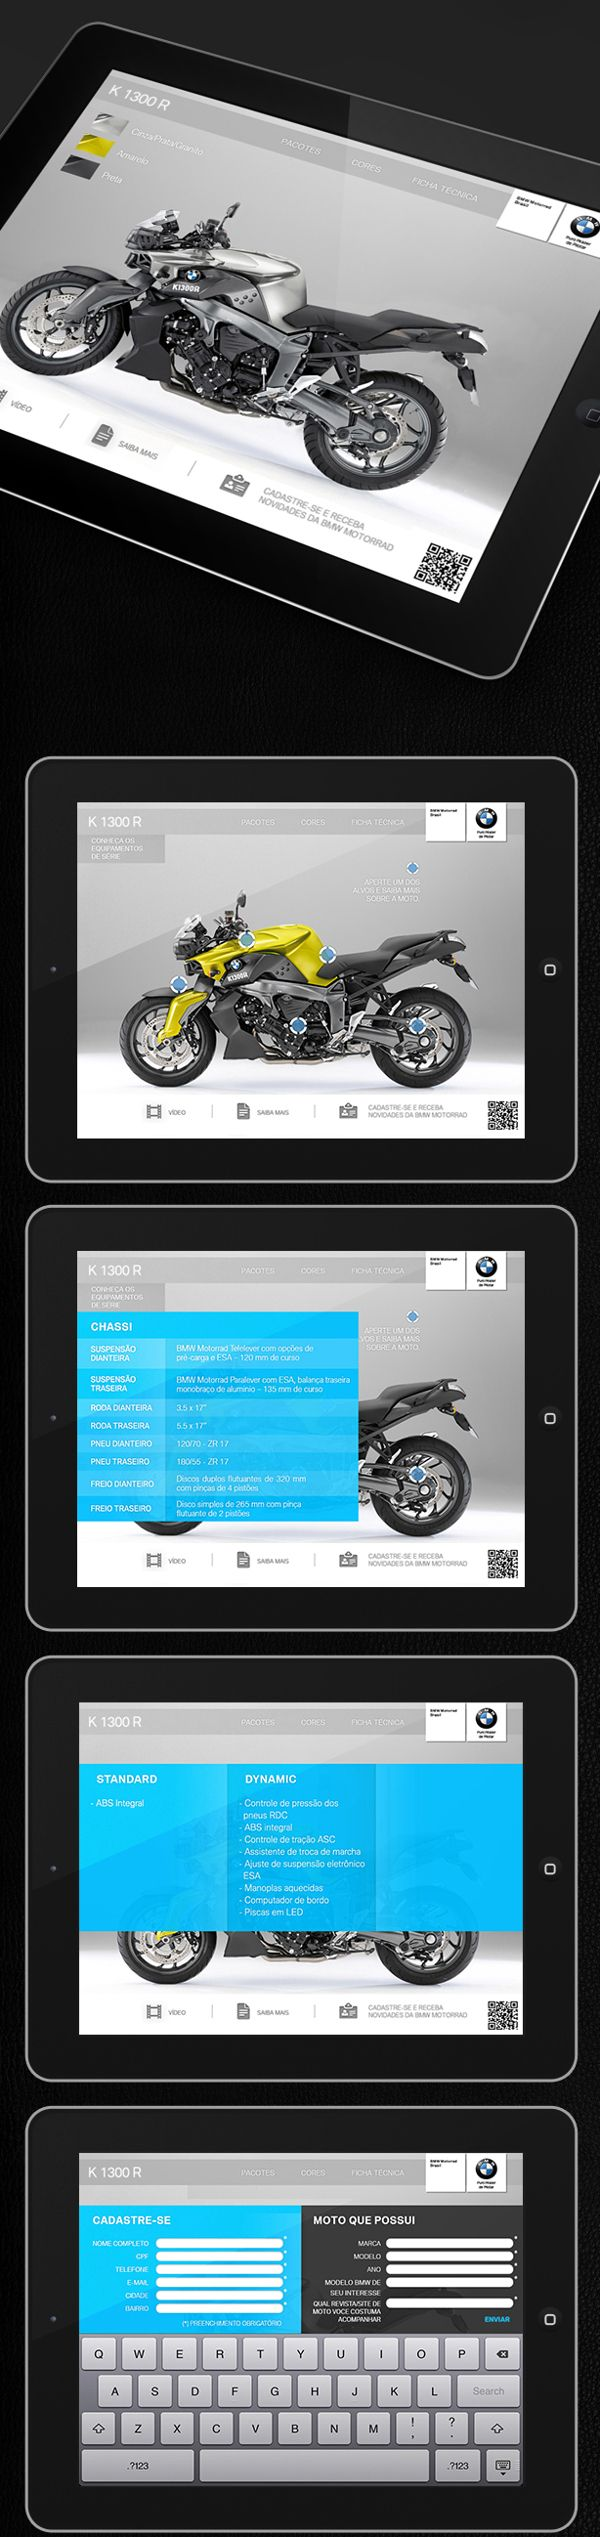 BMW Motorrad Brasil | Web App by Bruno Capella, via Behance